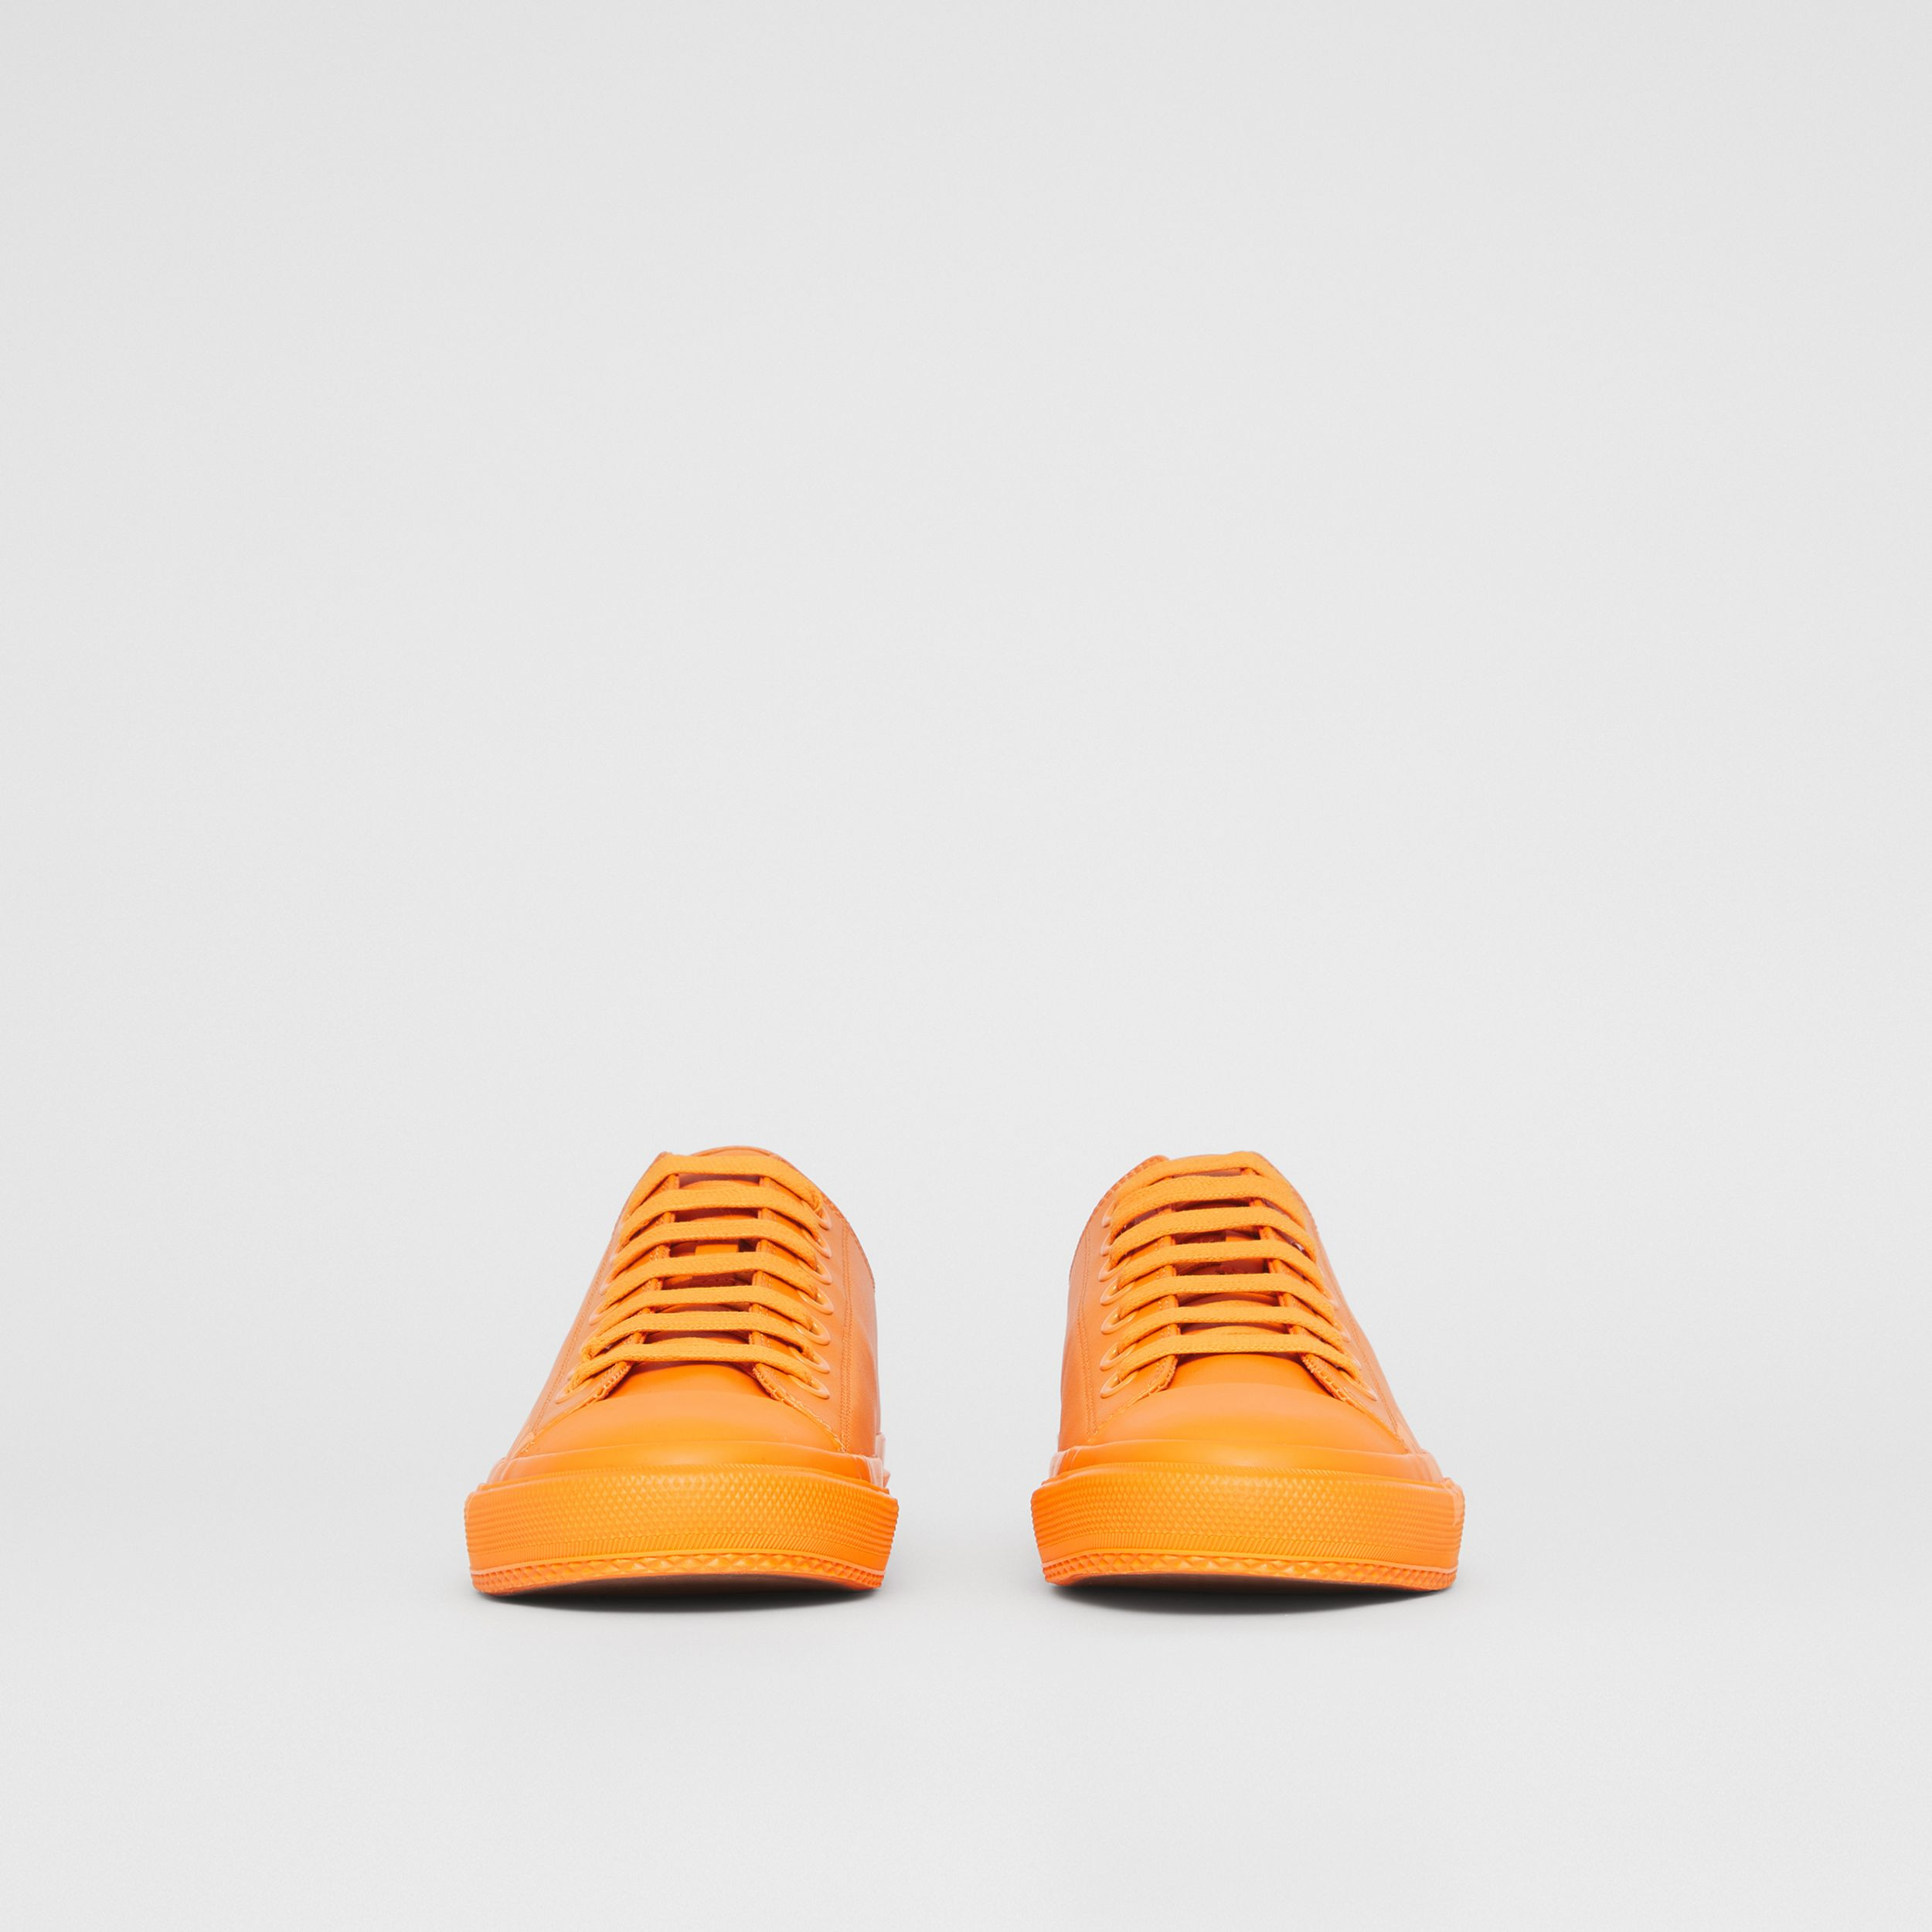 Logo Print Leather Sneakers – Online Exclusive in Deep Orange - Women | Burberry Hong Kong S.A.R. - 3